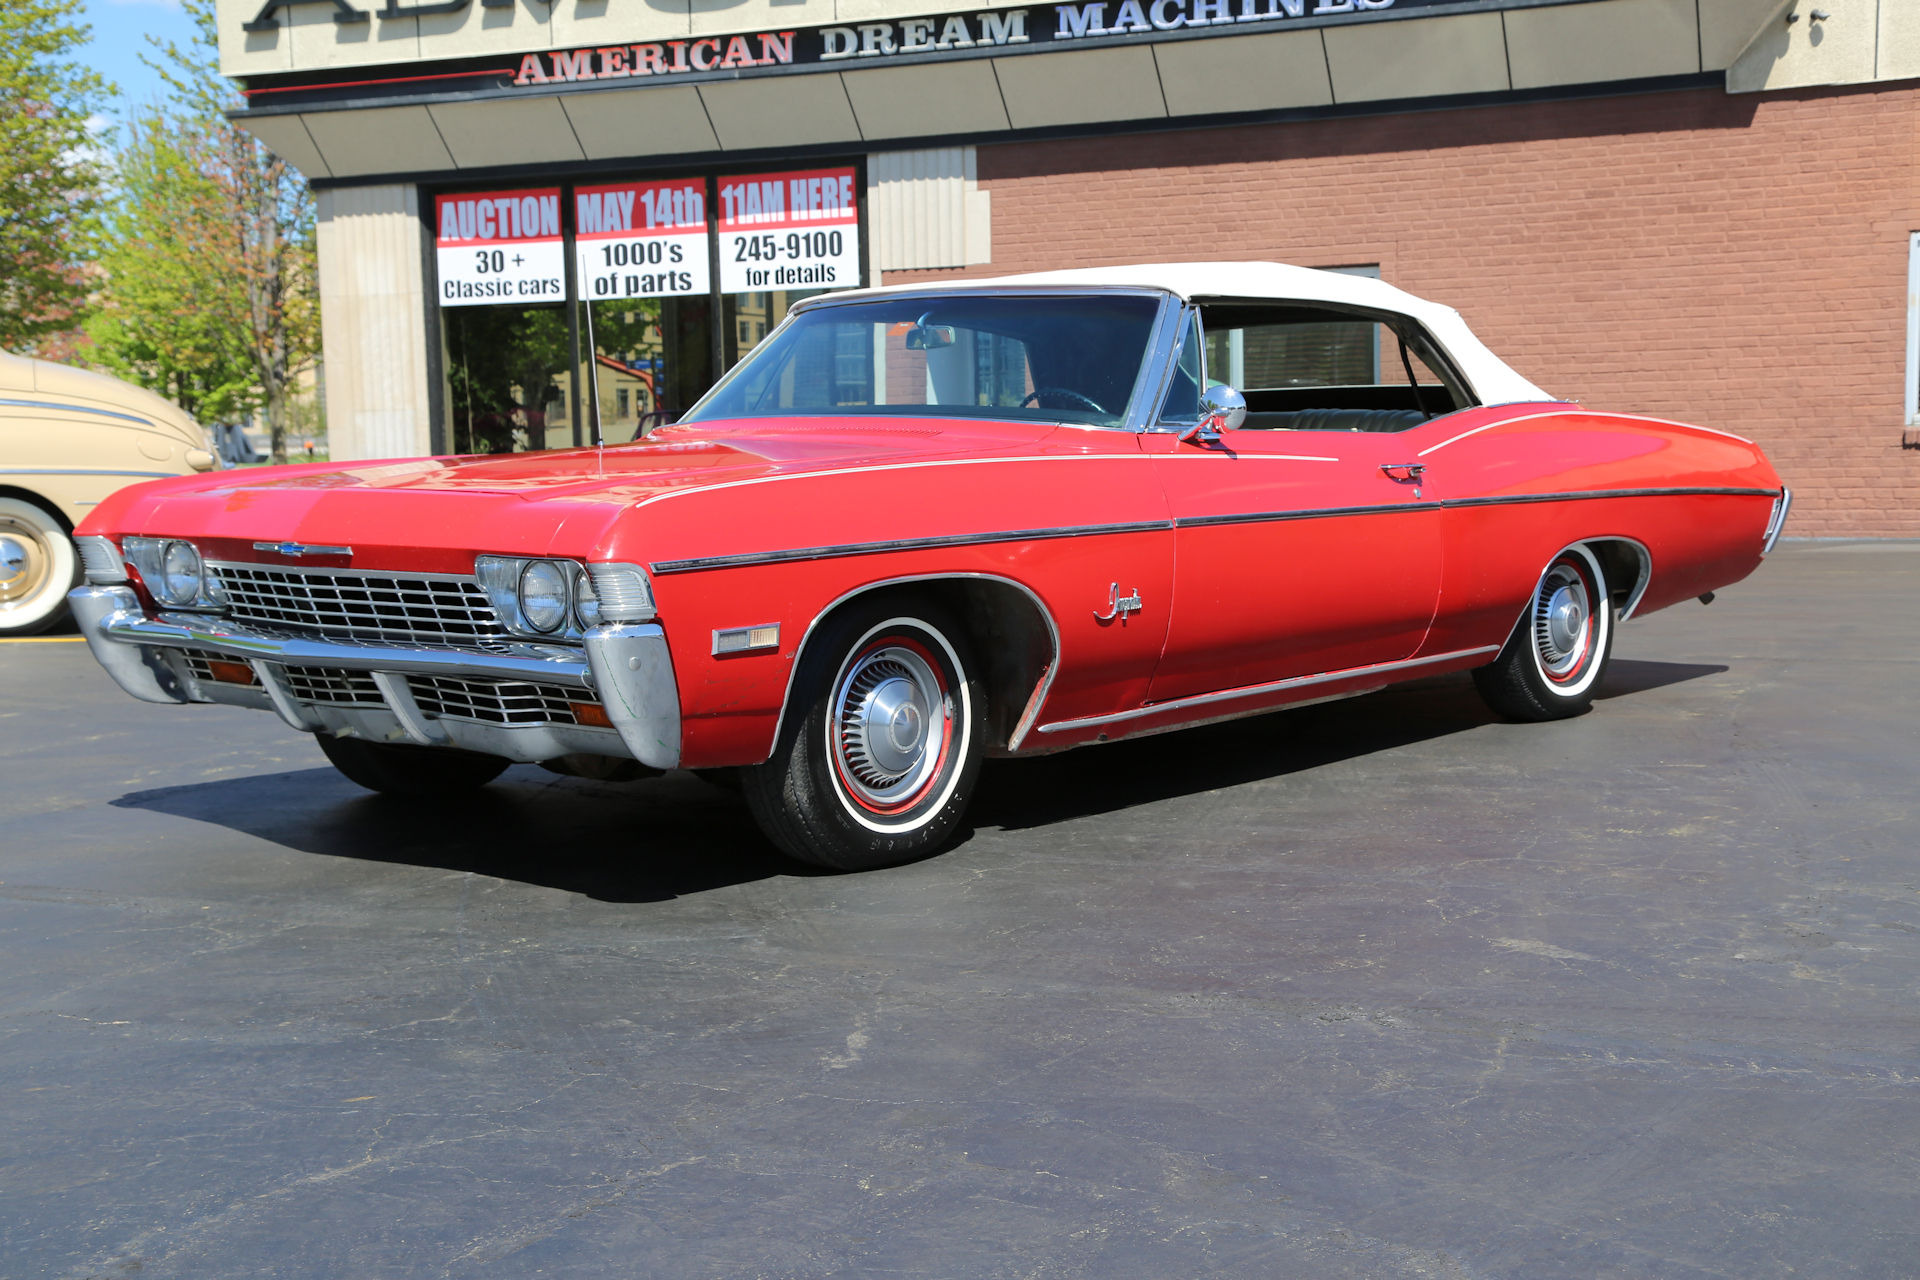 1968 Chevrolet Impala Convertible Red 396/325hp #\'s Match.12 Bolt ...